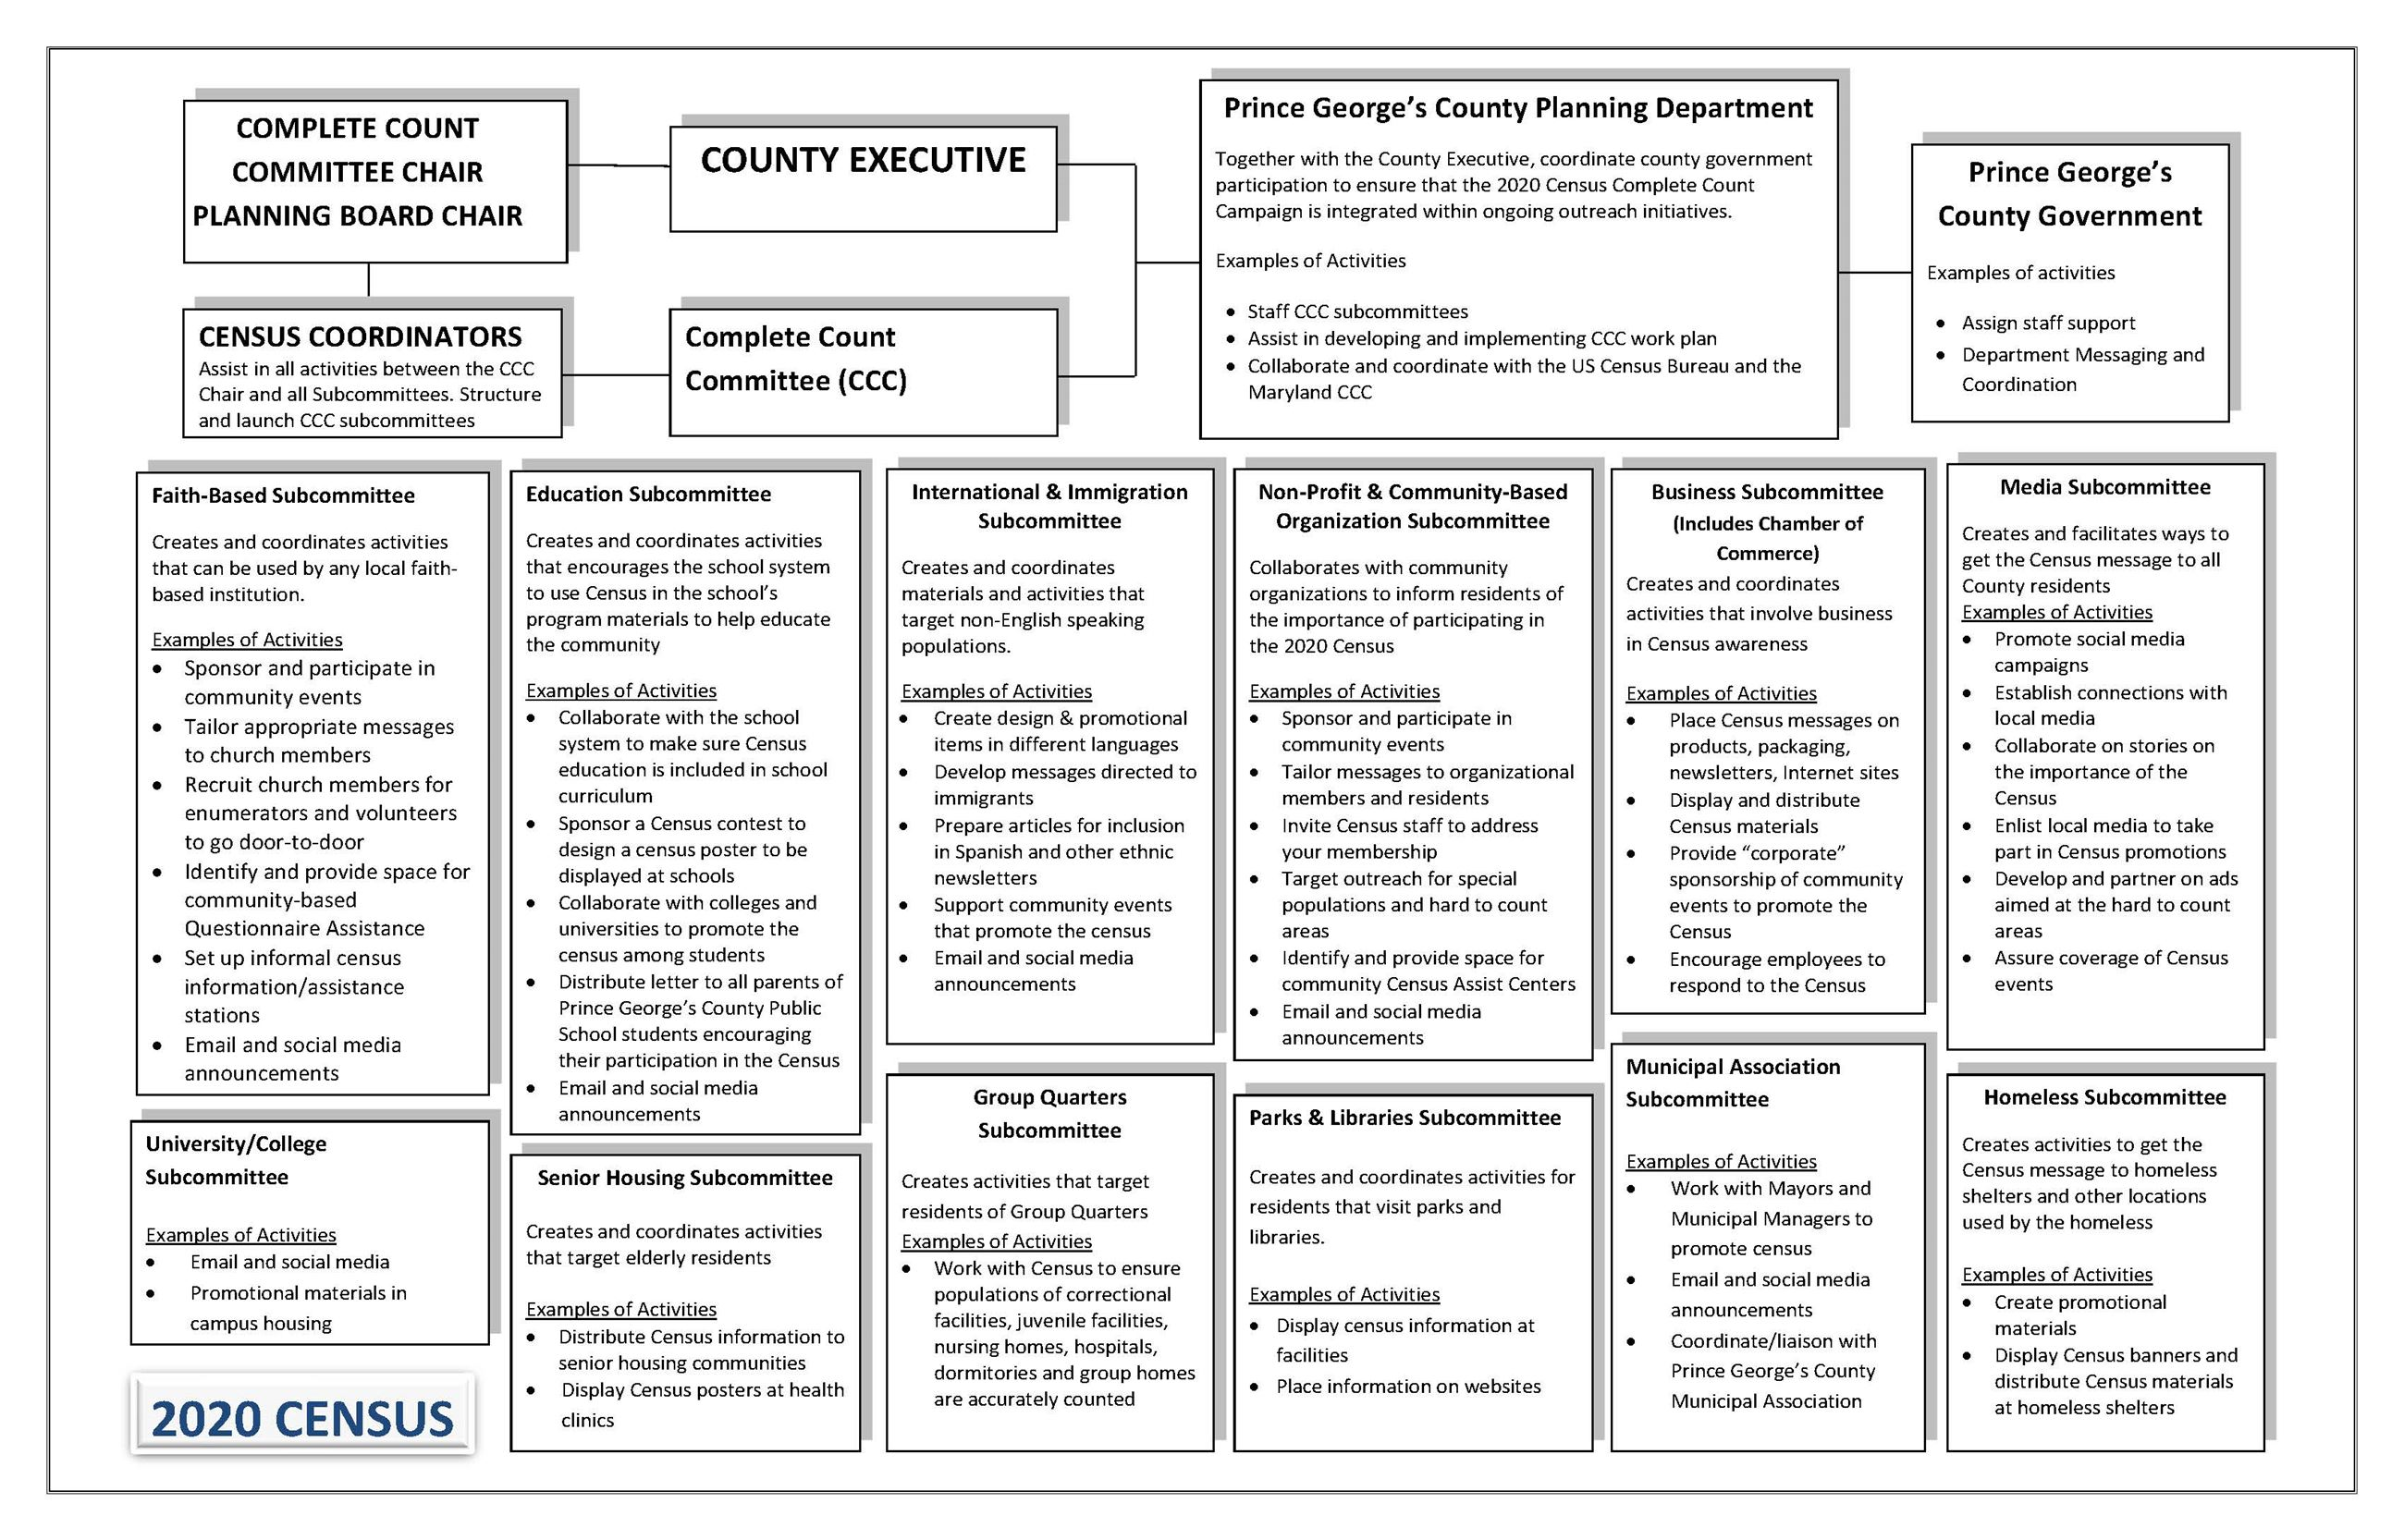 Complete Count Organization Chart